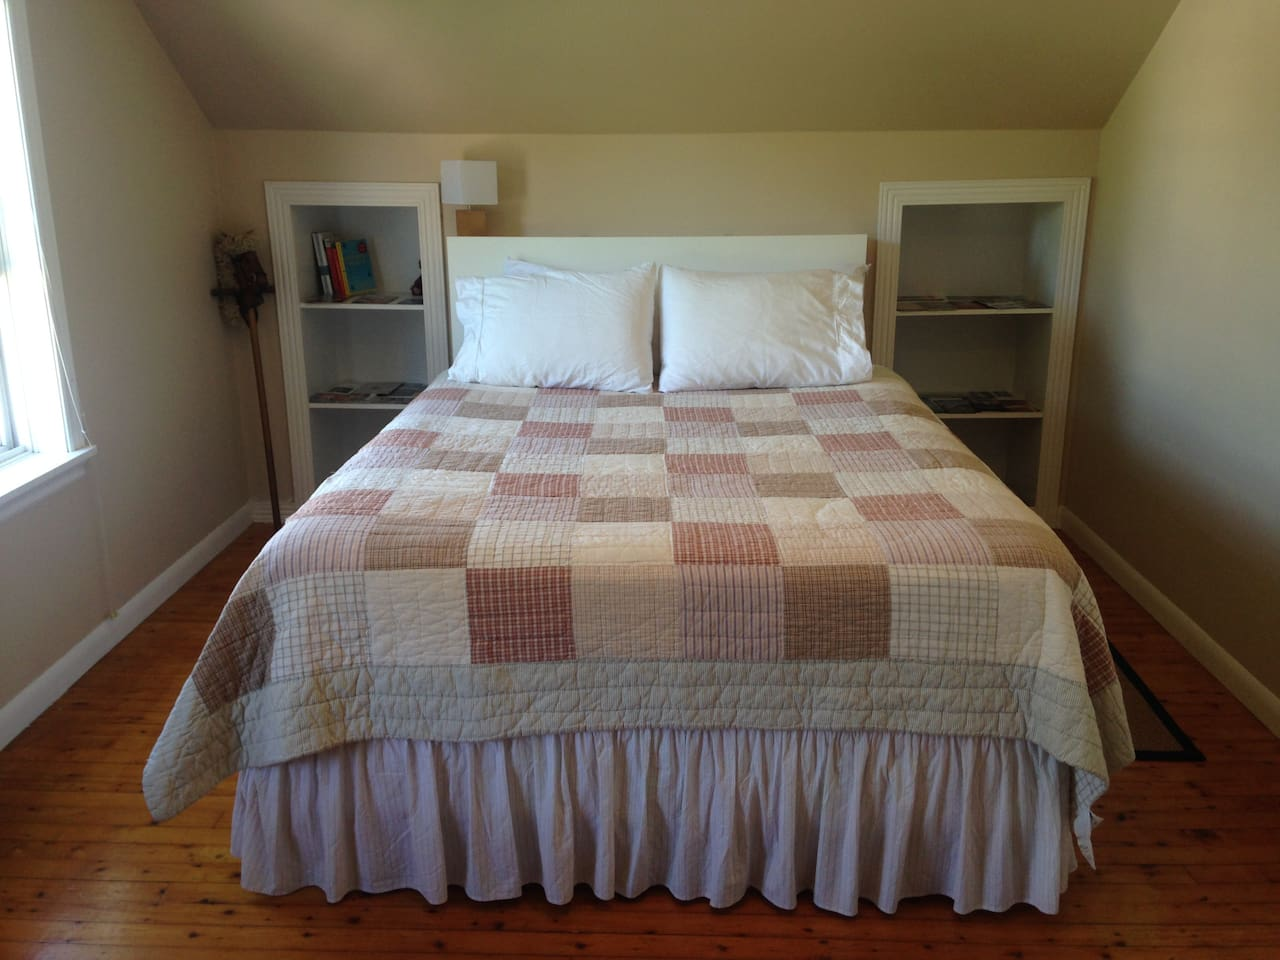 Your room features a comfortable queen bed we purchased just for AirBnB guests, so you can have a great night's sleep.